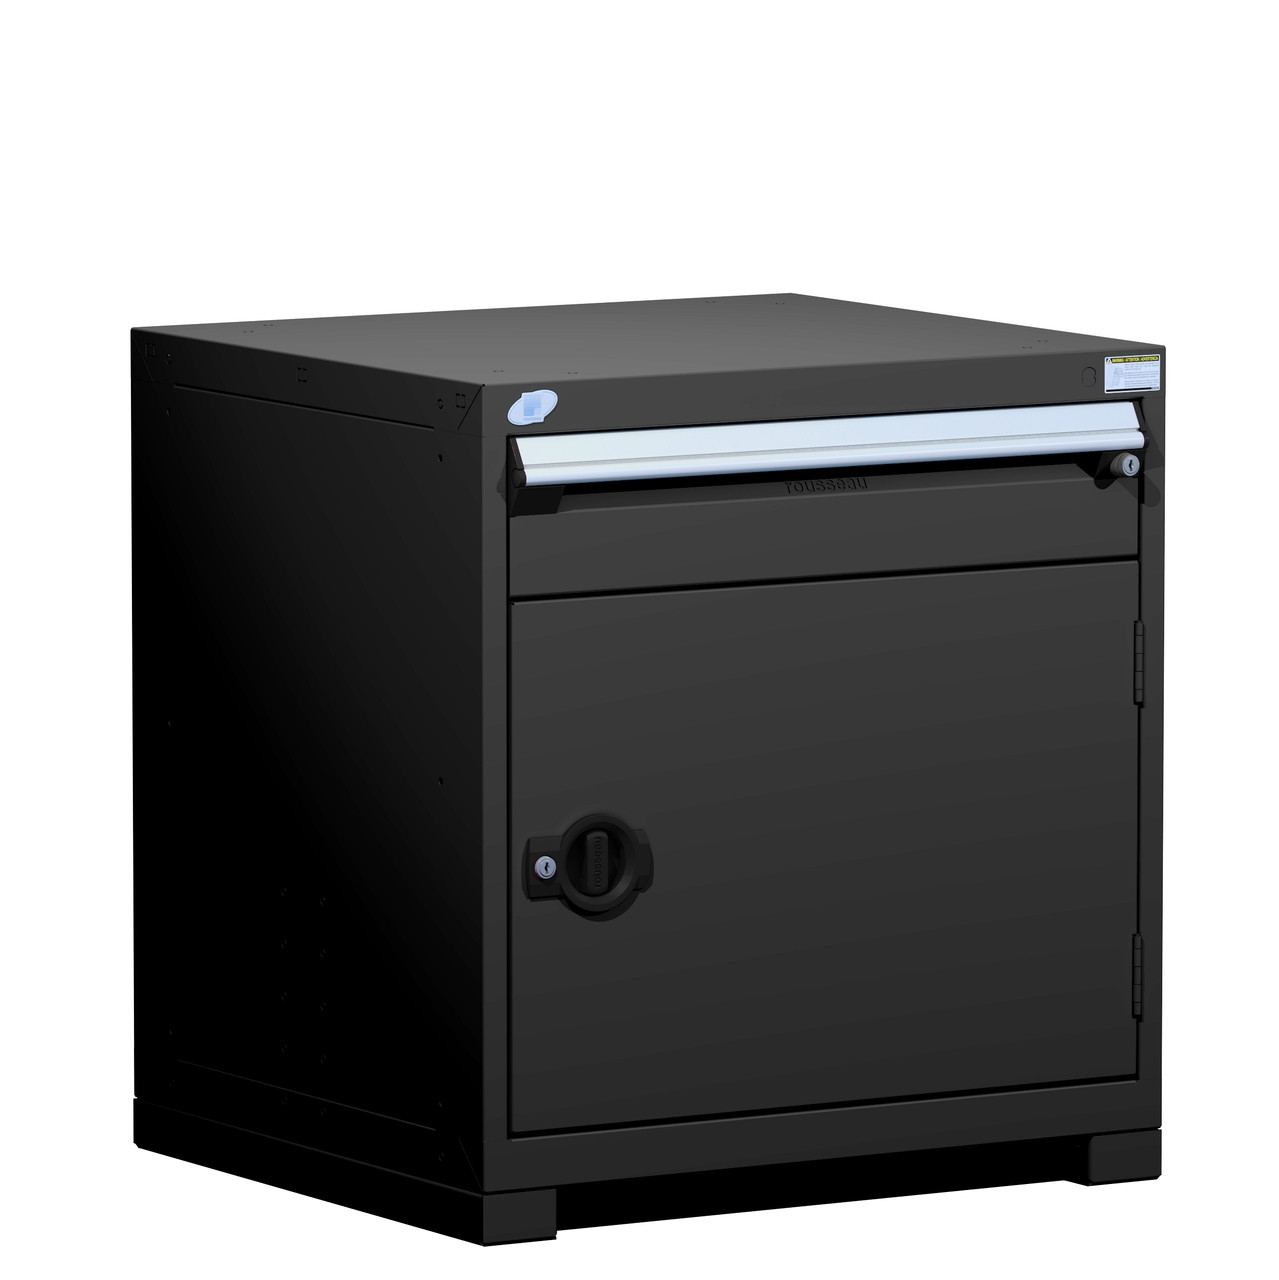 Best Prices On Rousseau Heavy Duty Storage Cabinets In The